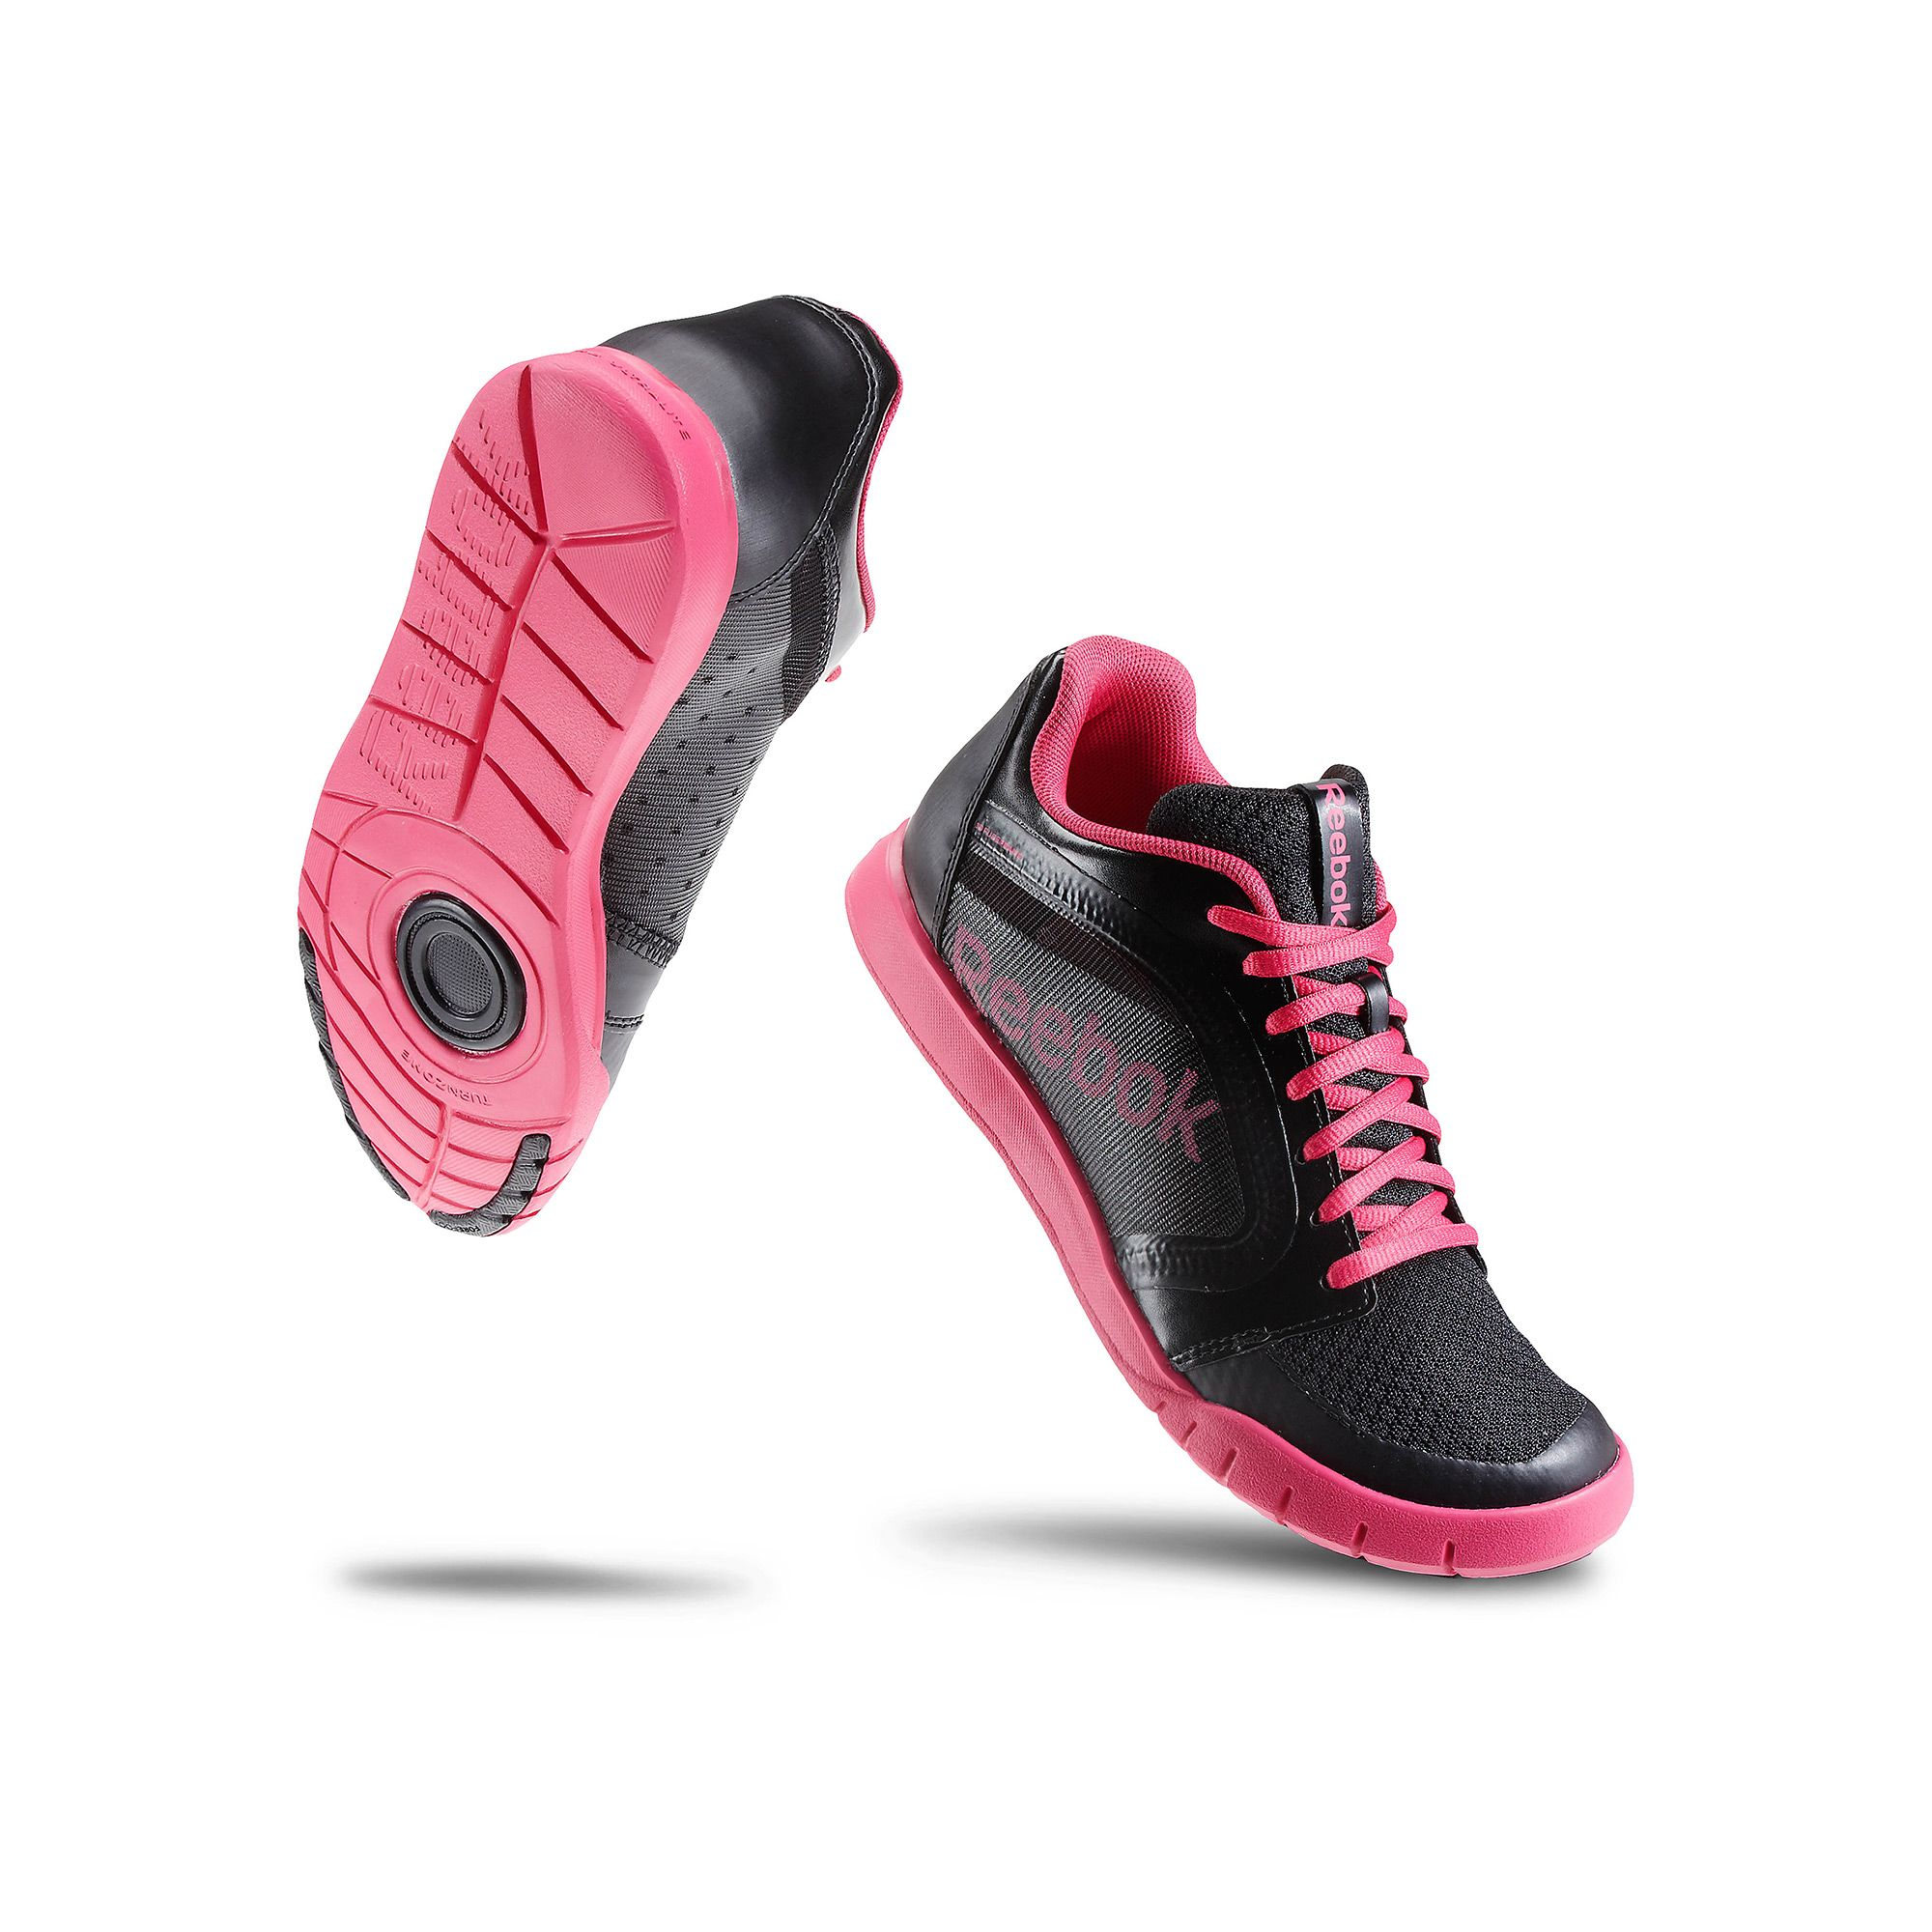 Reebok-running-shoes-and-sportsshoes-for-women (22)